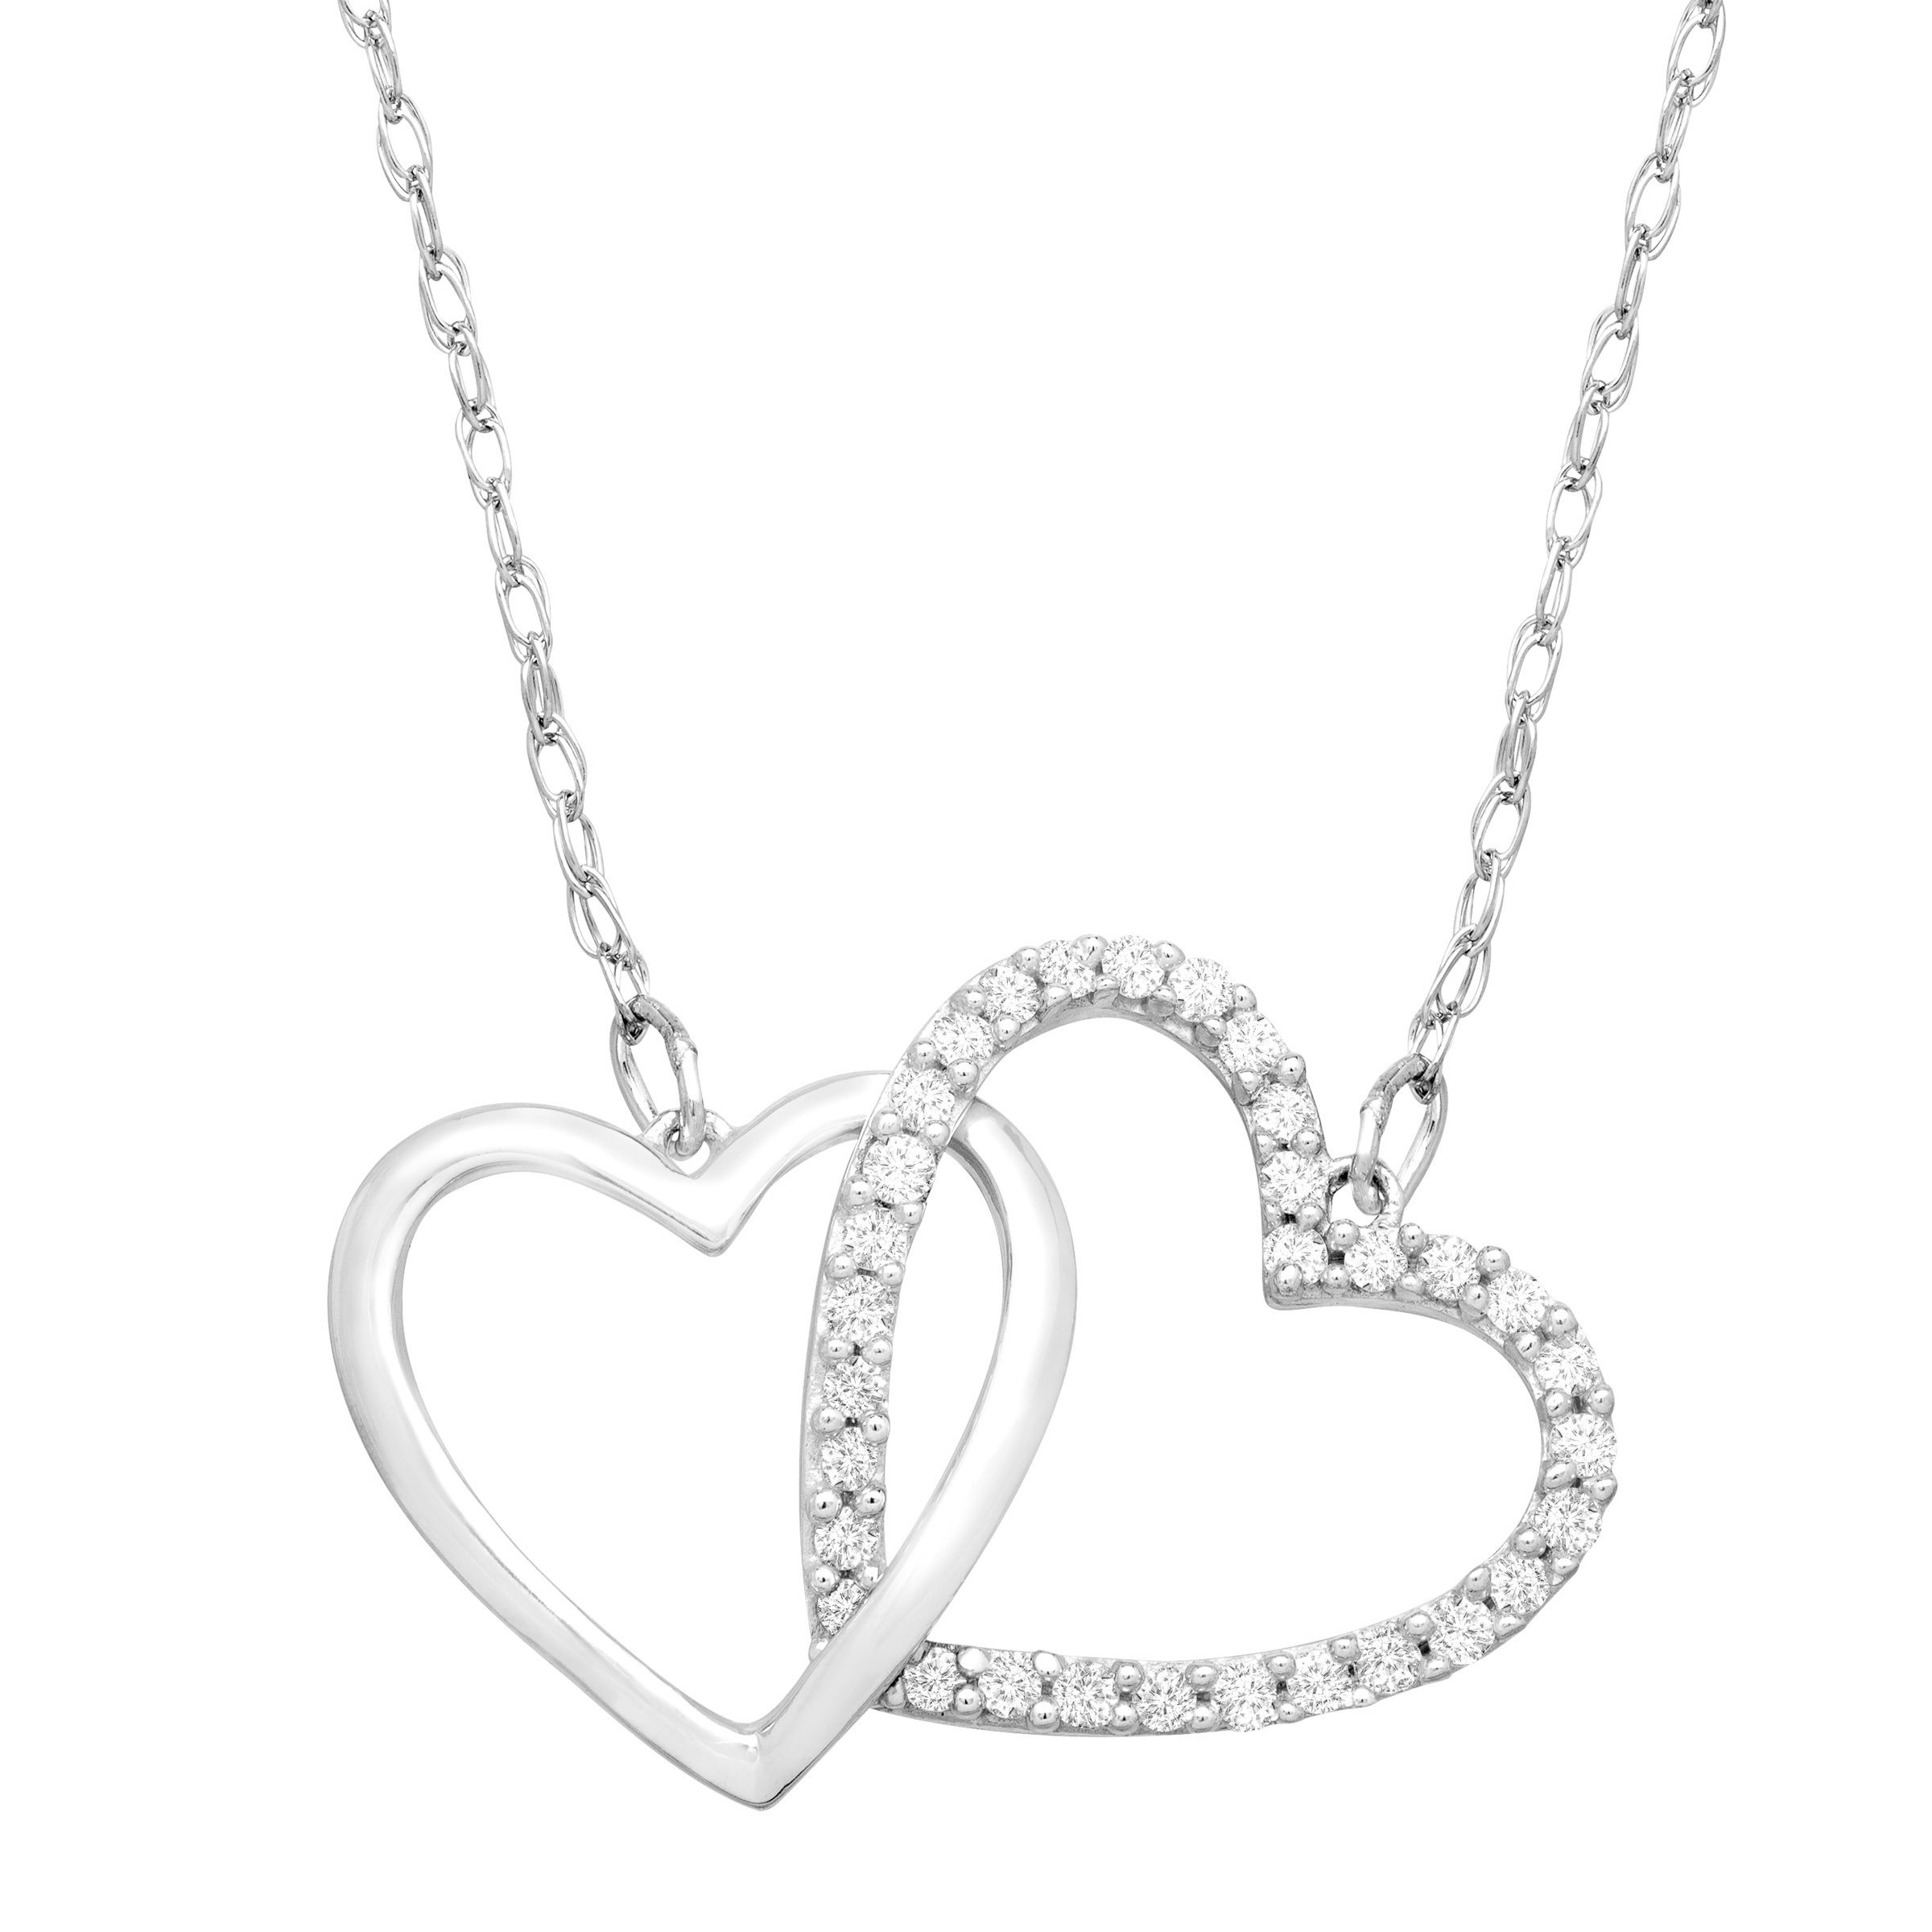 1/4 ct Diamond Linking Heart Necklace in Sterling Silver & Platinum